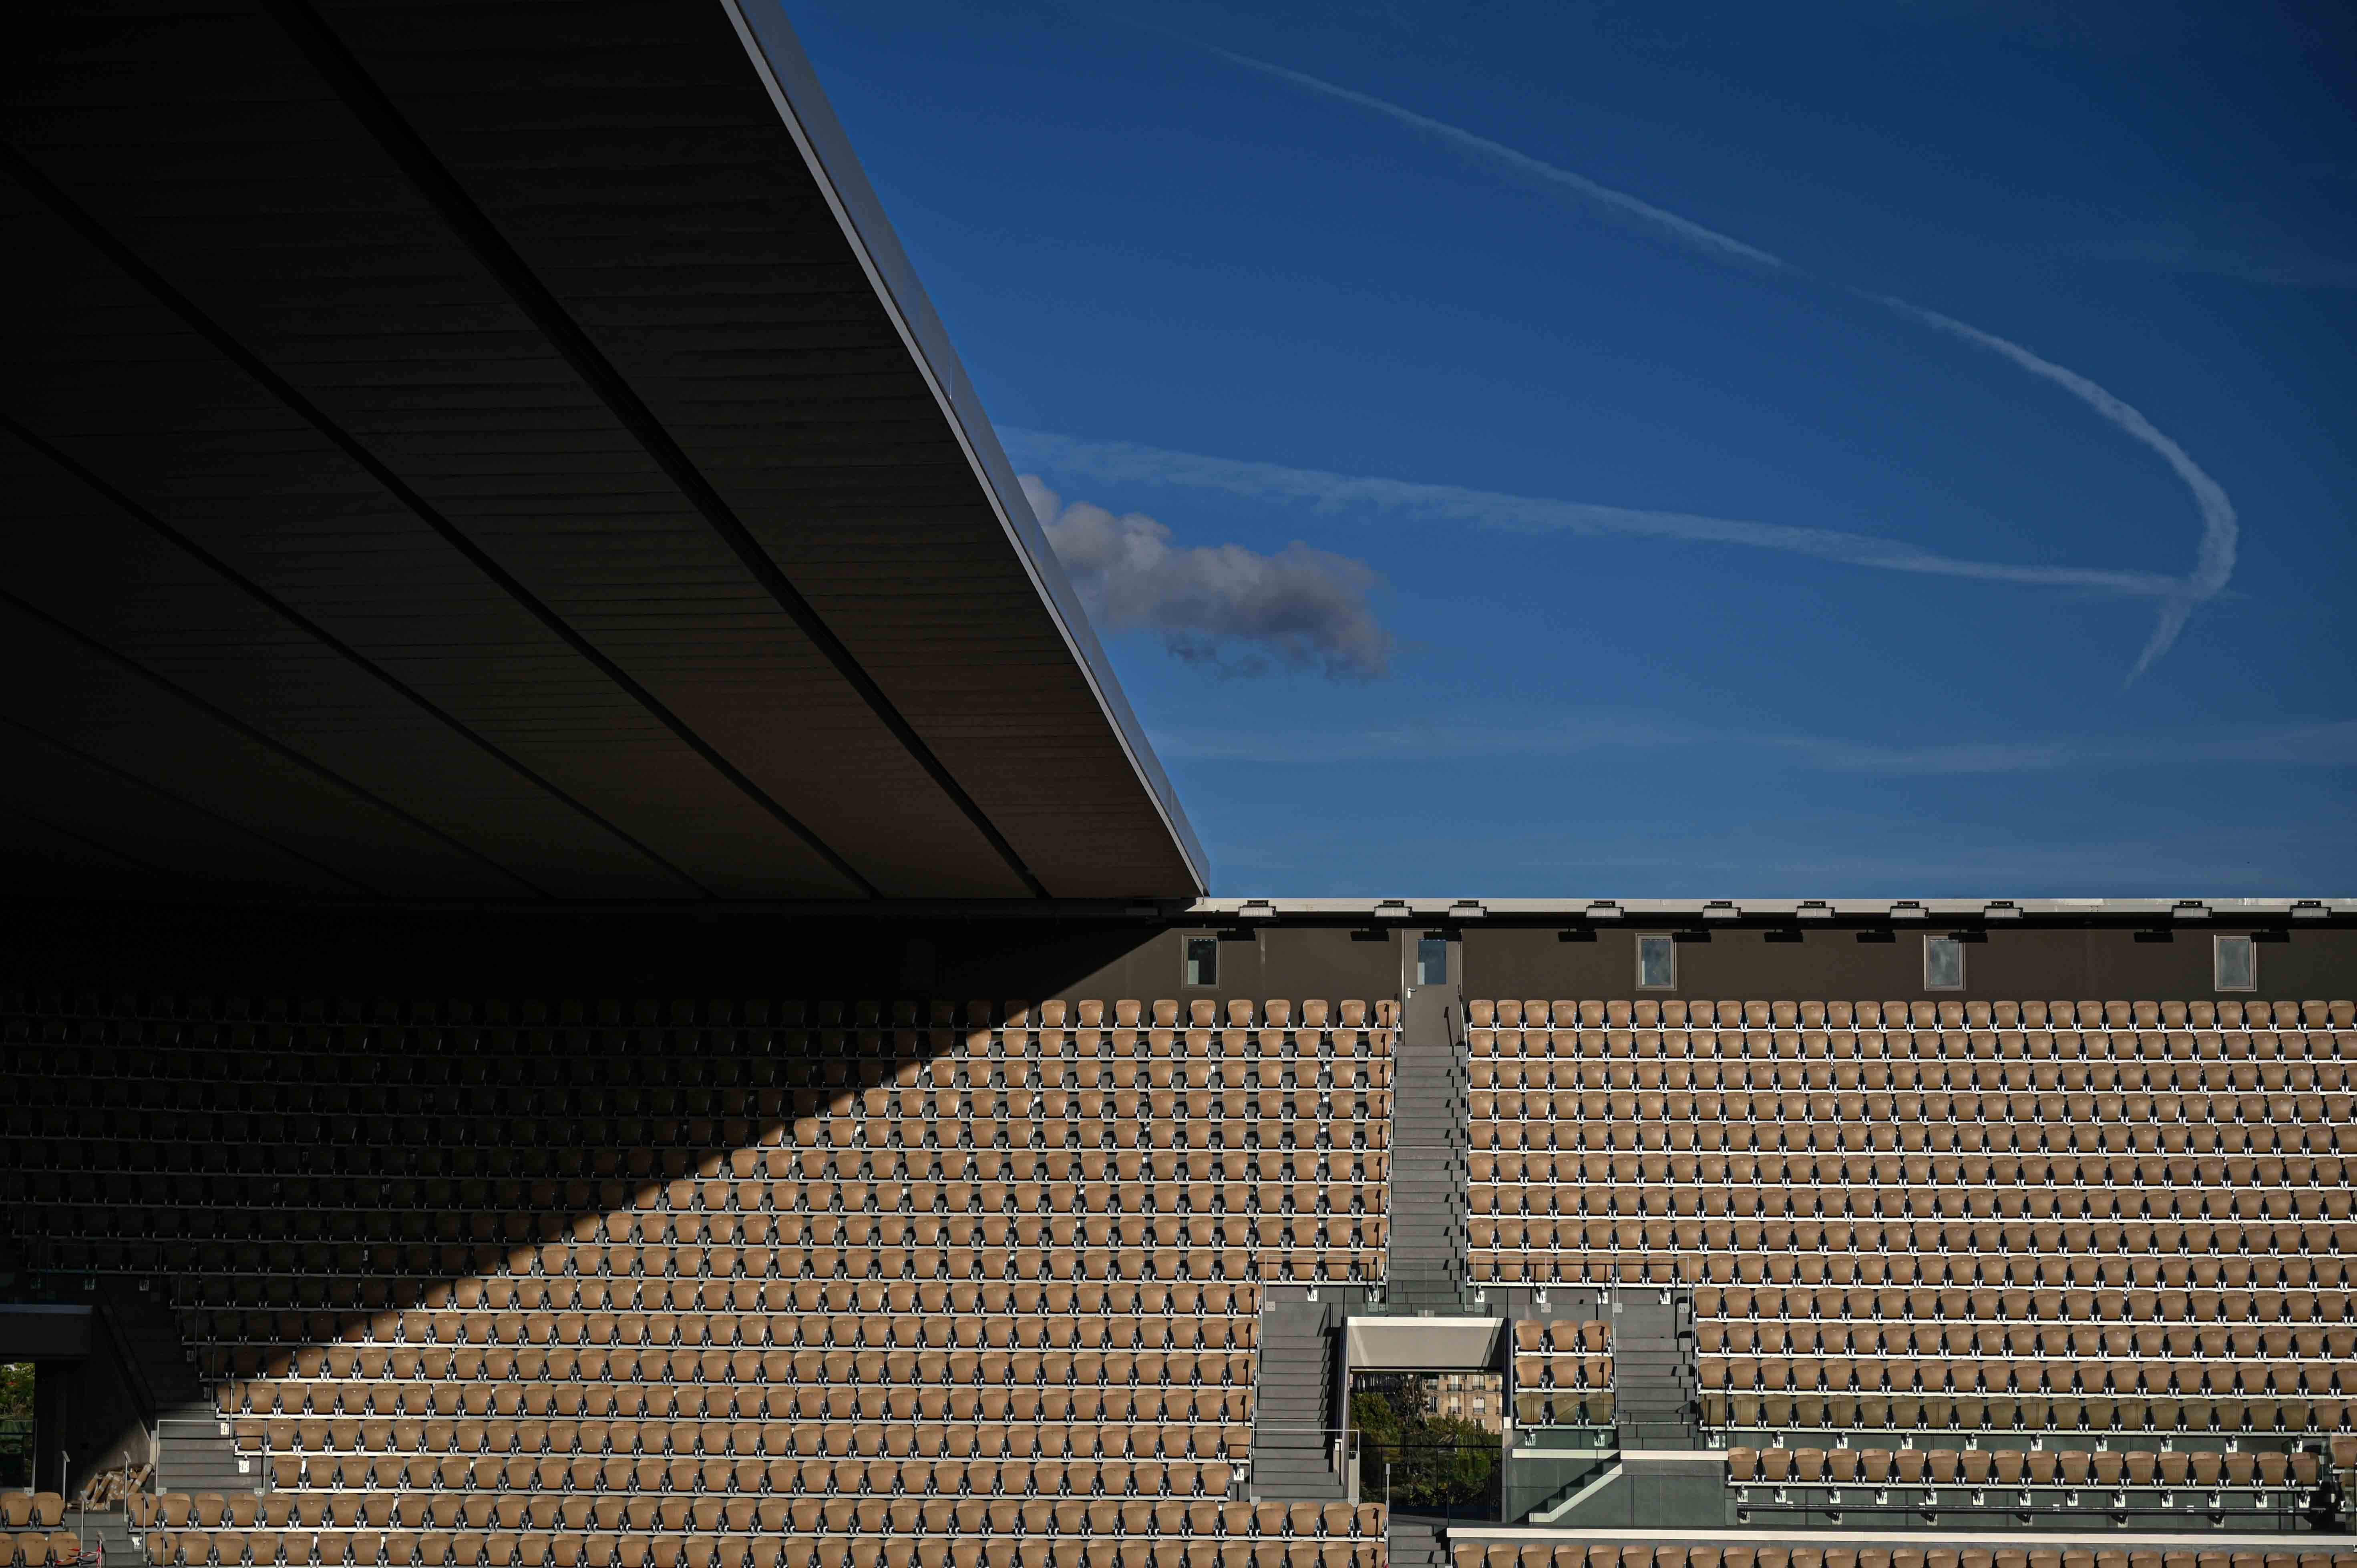 Views of the Philippe-Chatrier court's roof and the sky 2020